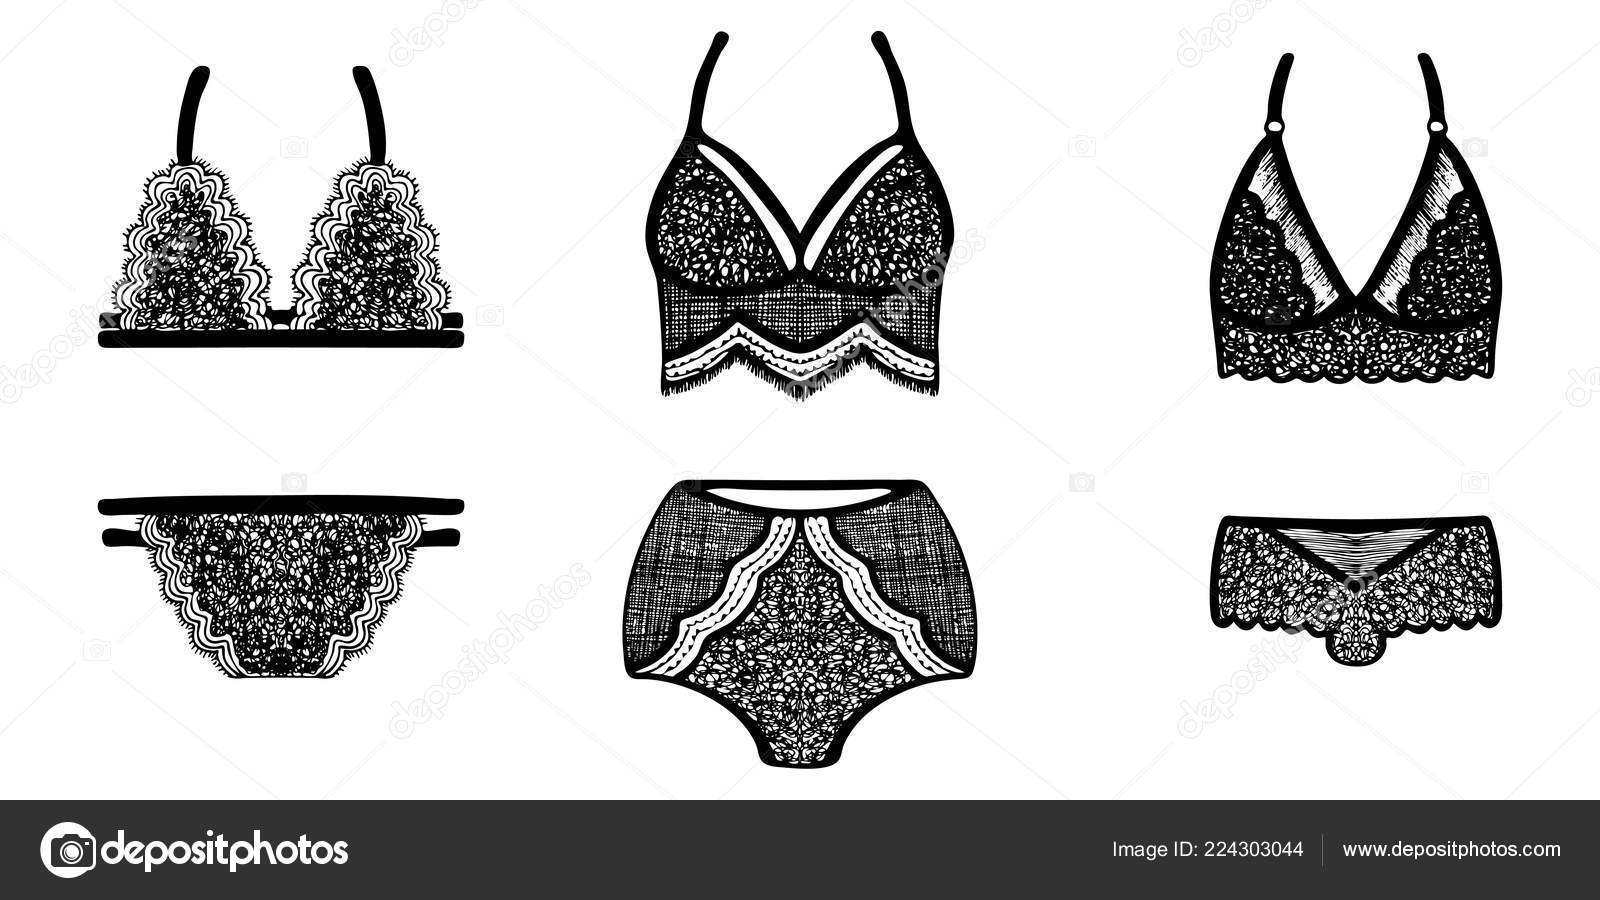 ebbde717e5a0 Lace hand-drawn ink on women's underwear. Set of 3 sexy lingerie sets.